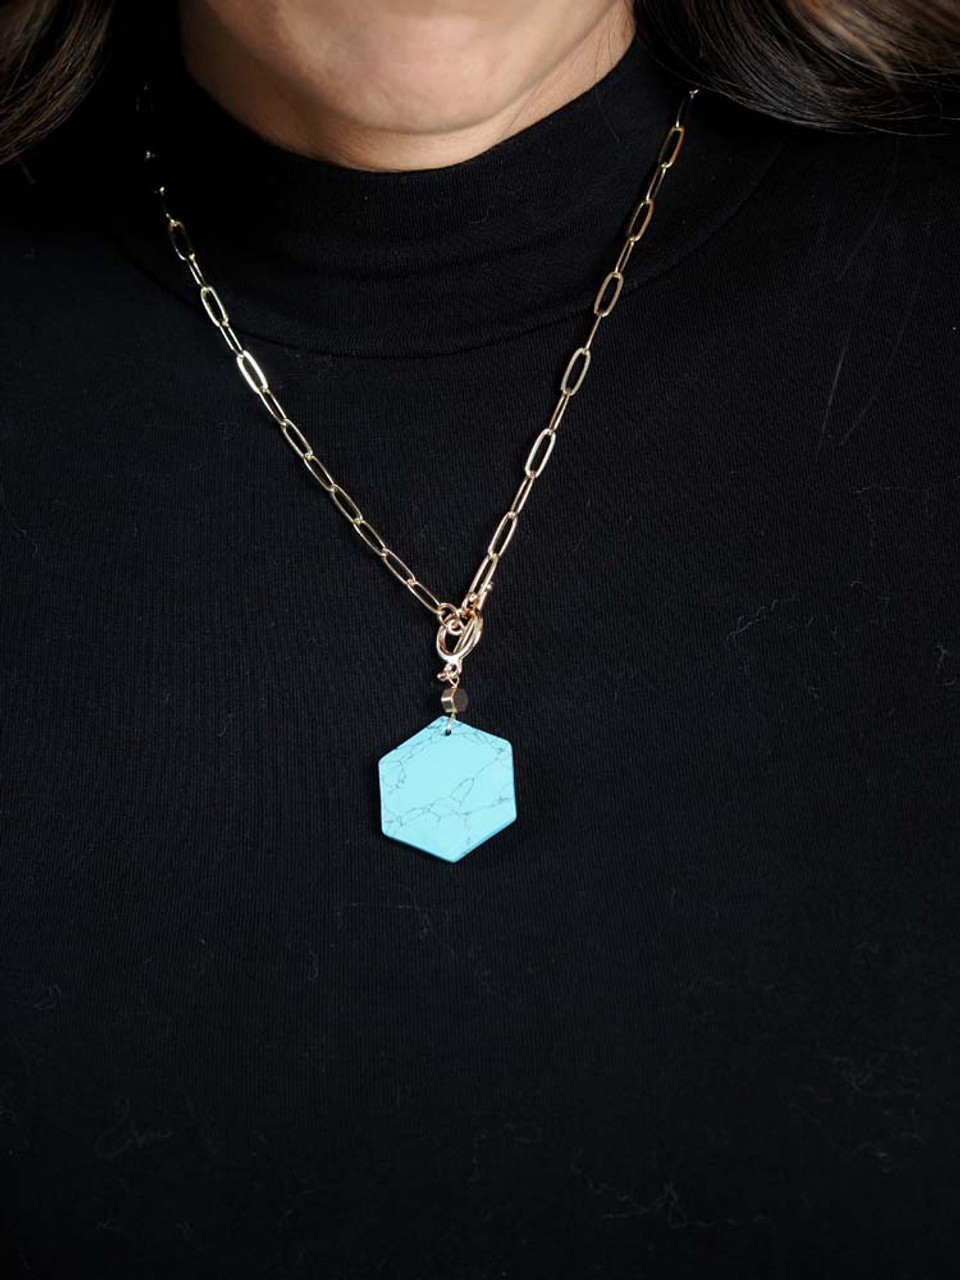 gold link necklace with turquoise pendant